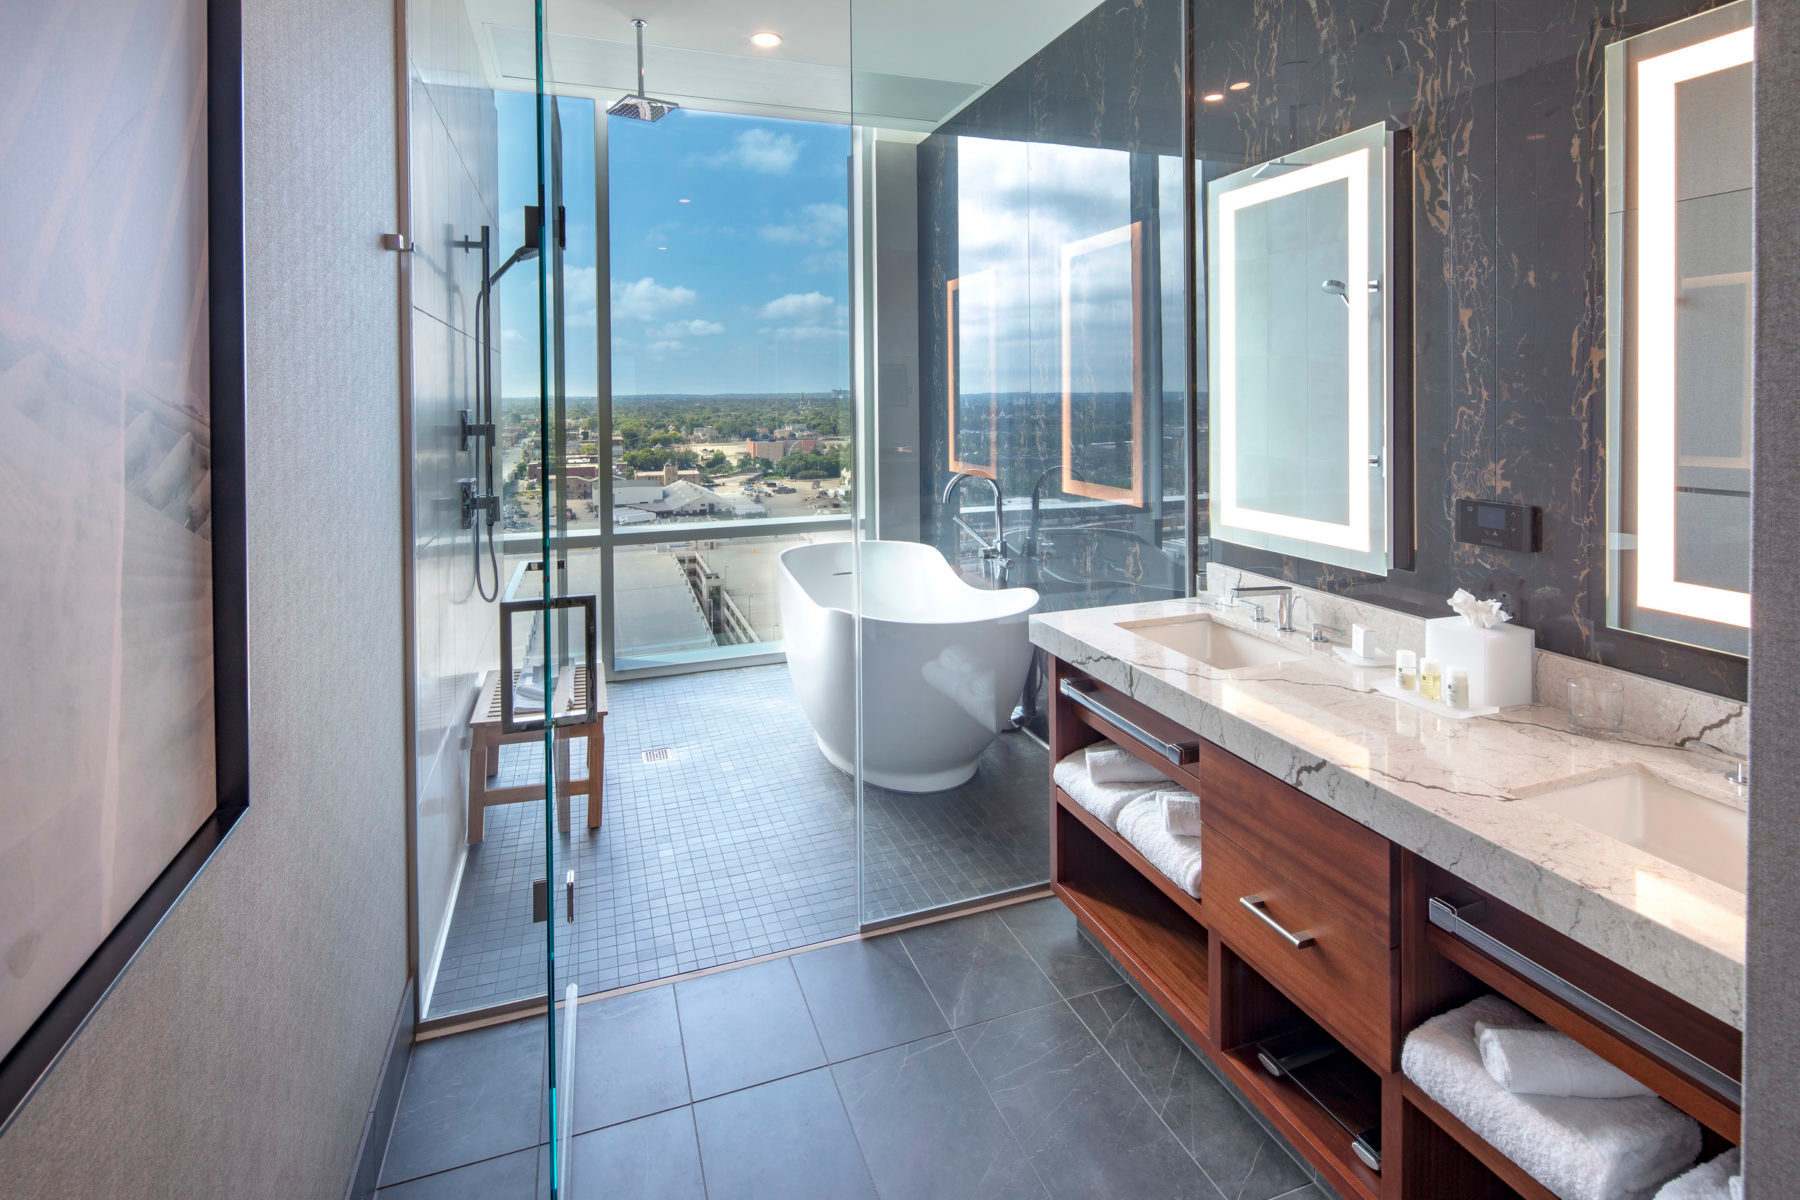 A luxurious spa-inspired bathroom at the Potawatomi Hotel, designed by Cuningham Group.